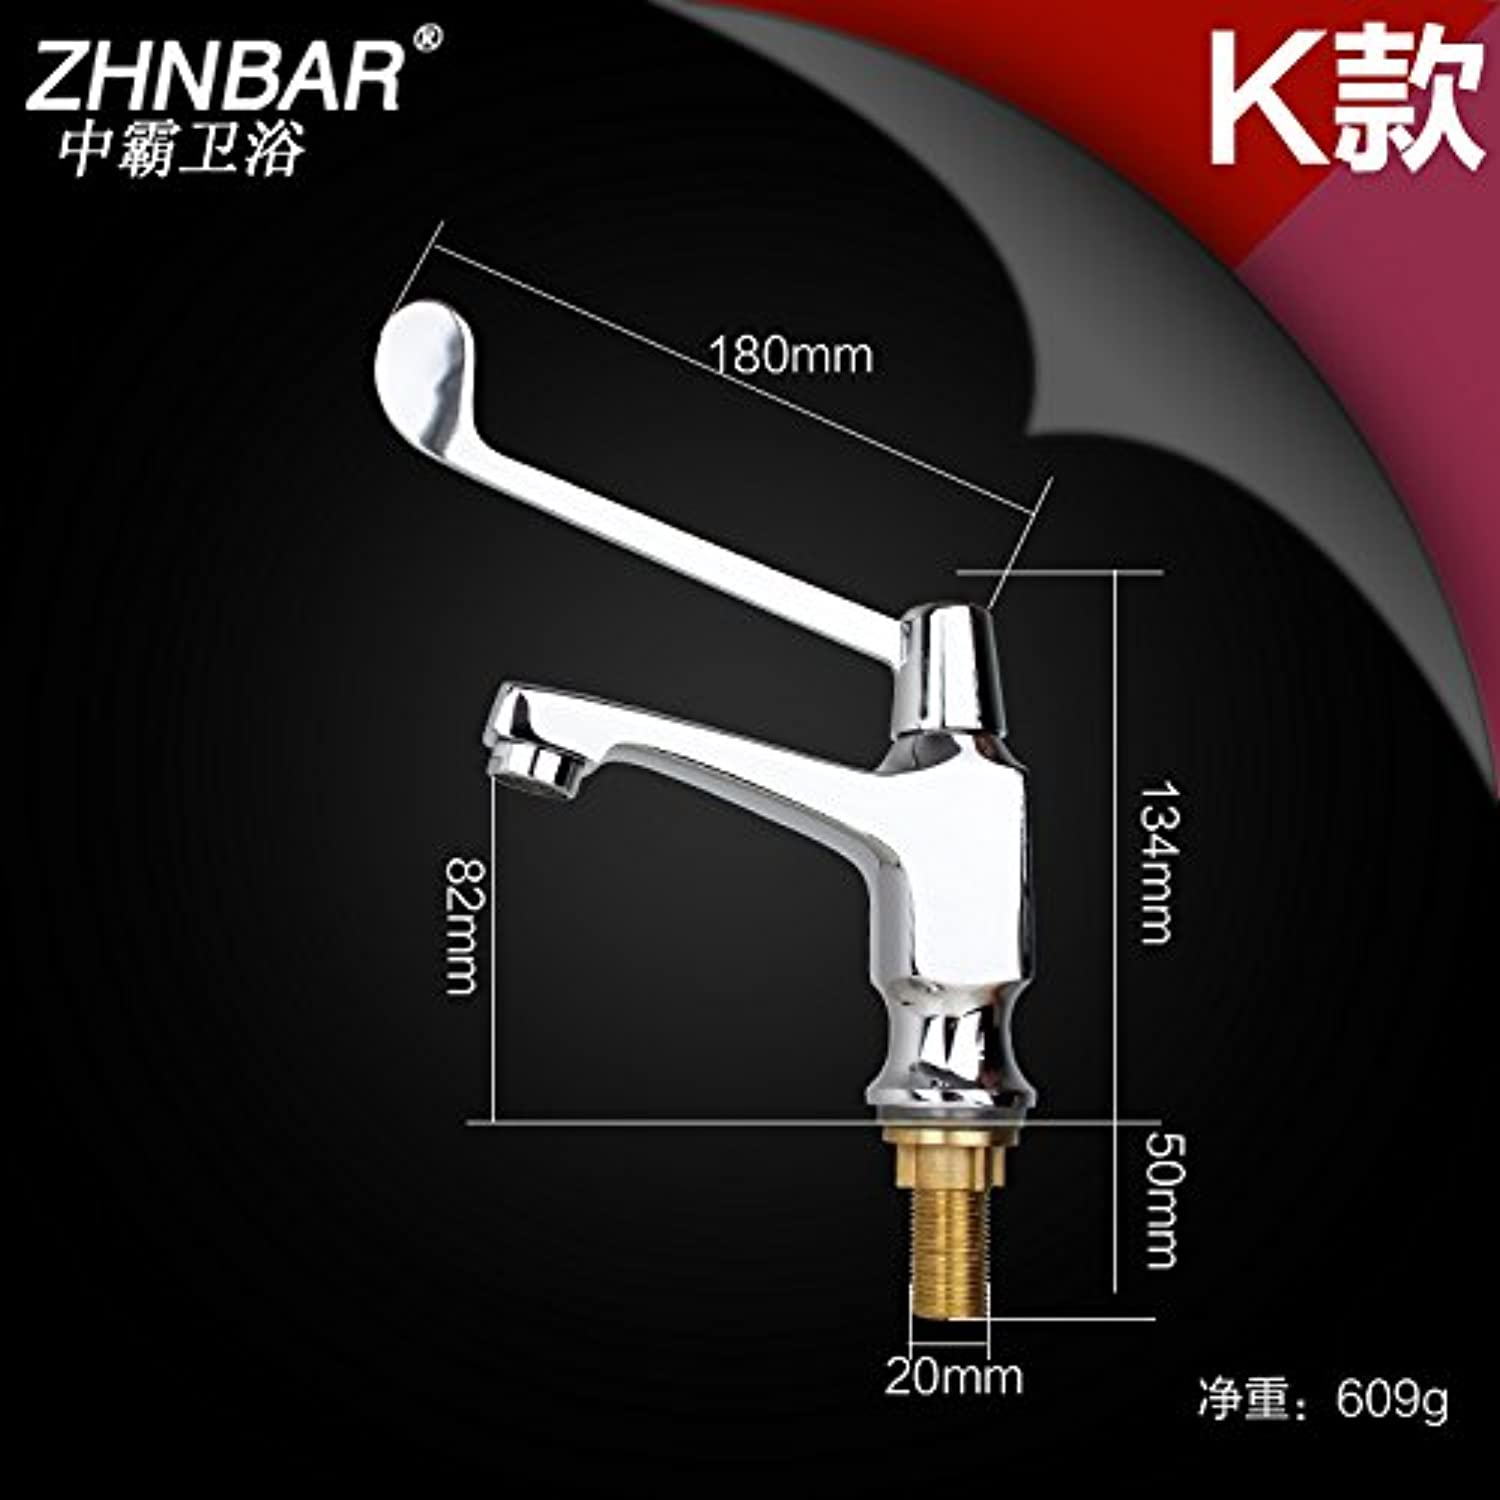 Hlluya Professional Sink Mixer Tap Kitchen Faucet Didier medical tap long-Handle faucet copper-wide medical hospital faucet elbow touch type water taps,K